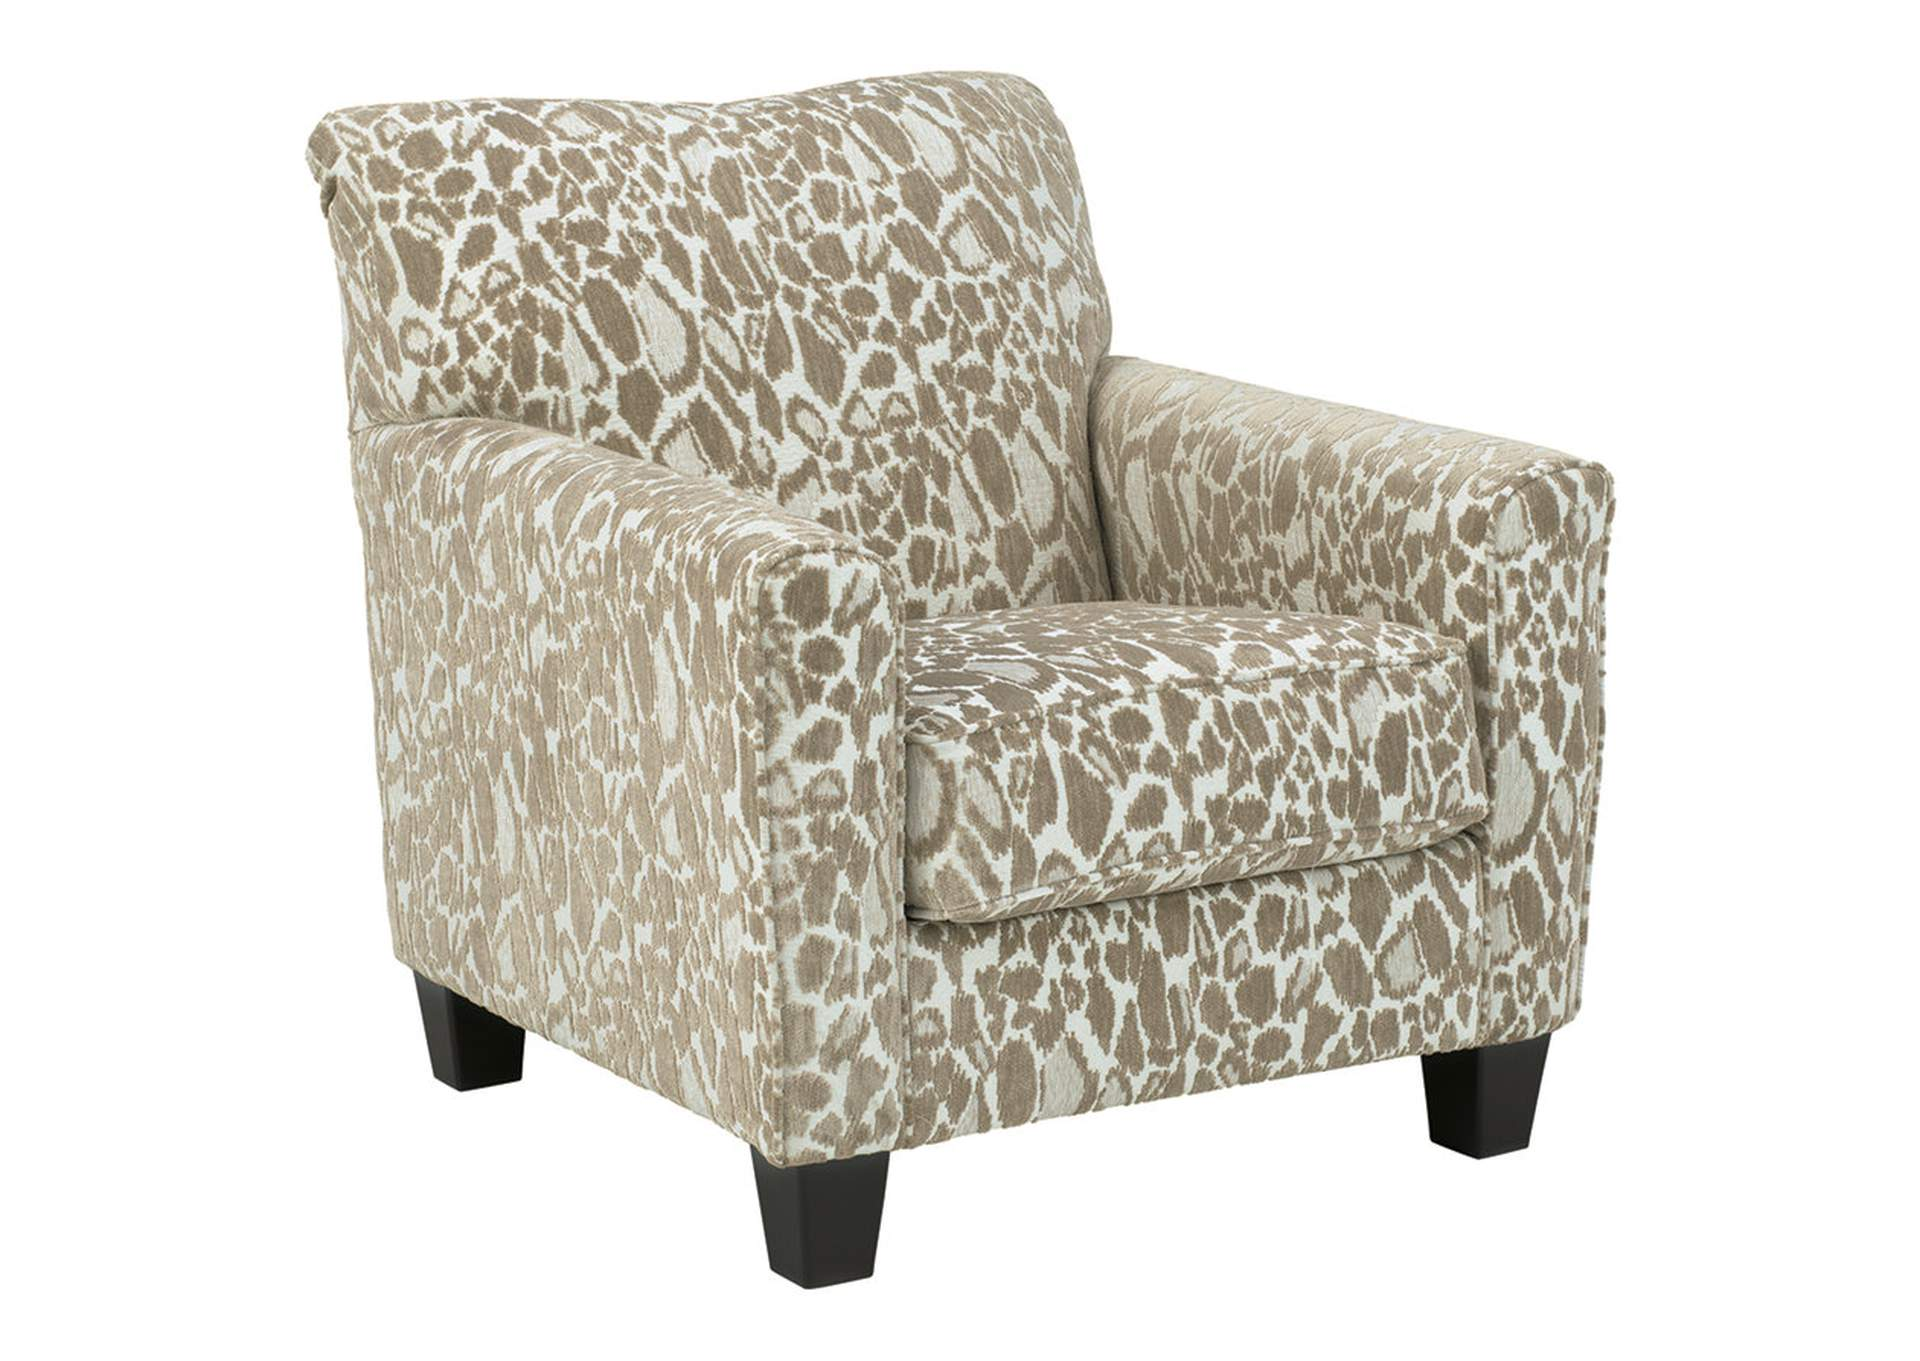 Dovemont Accent Chair,Signature Design By Ashley